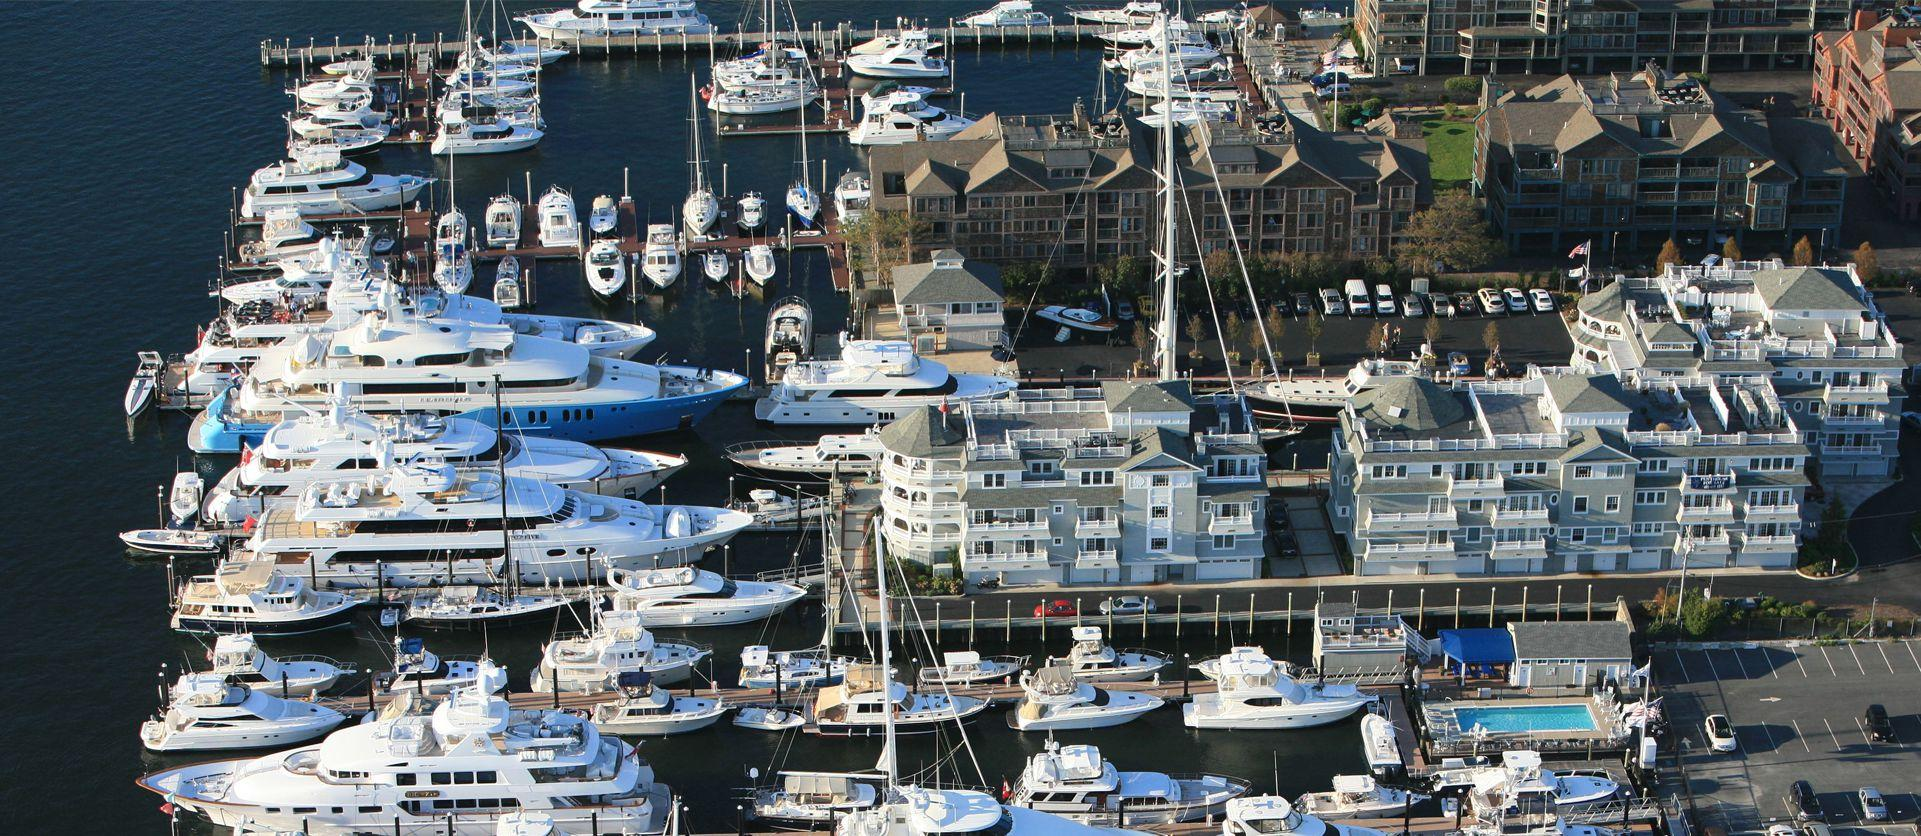 The Marina at Brown & Howard Wharf Welcomes the International Yachting Community to Newport, RI for the 2021 Season